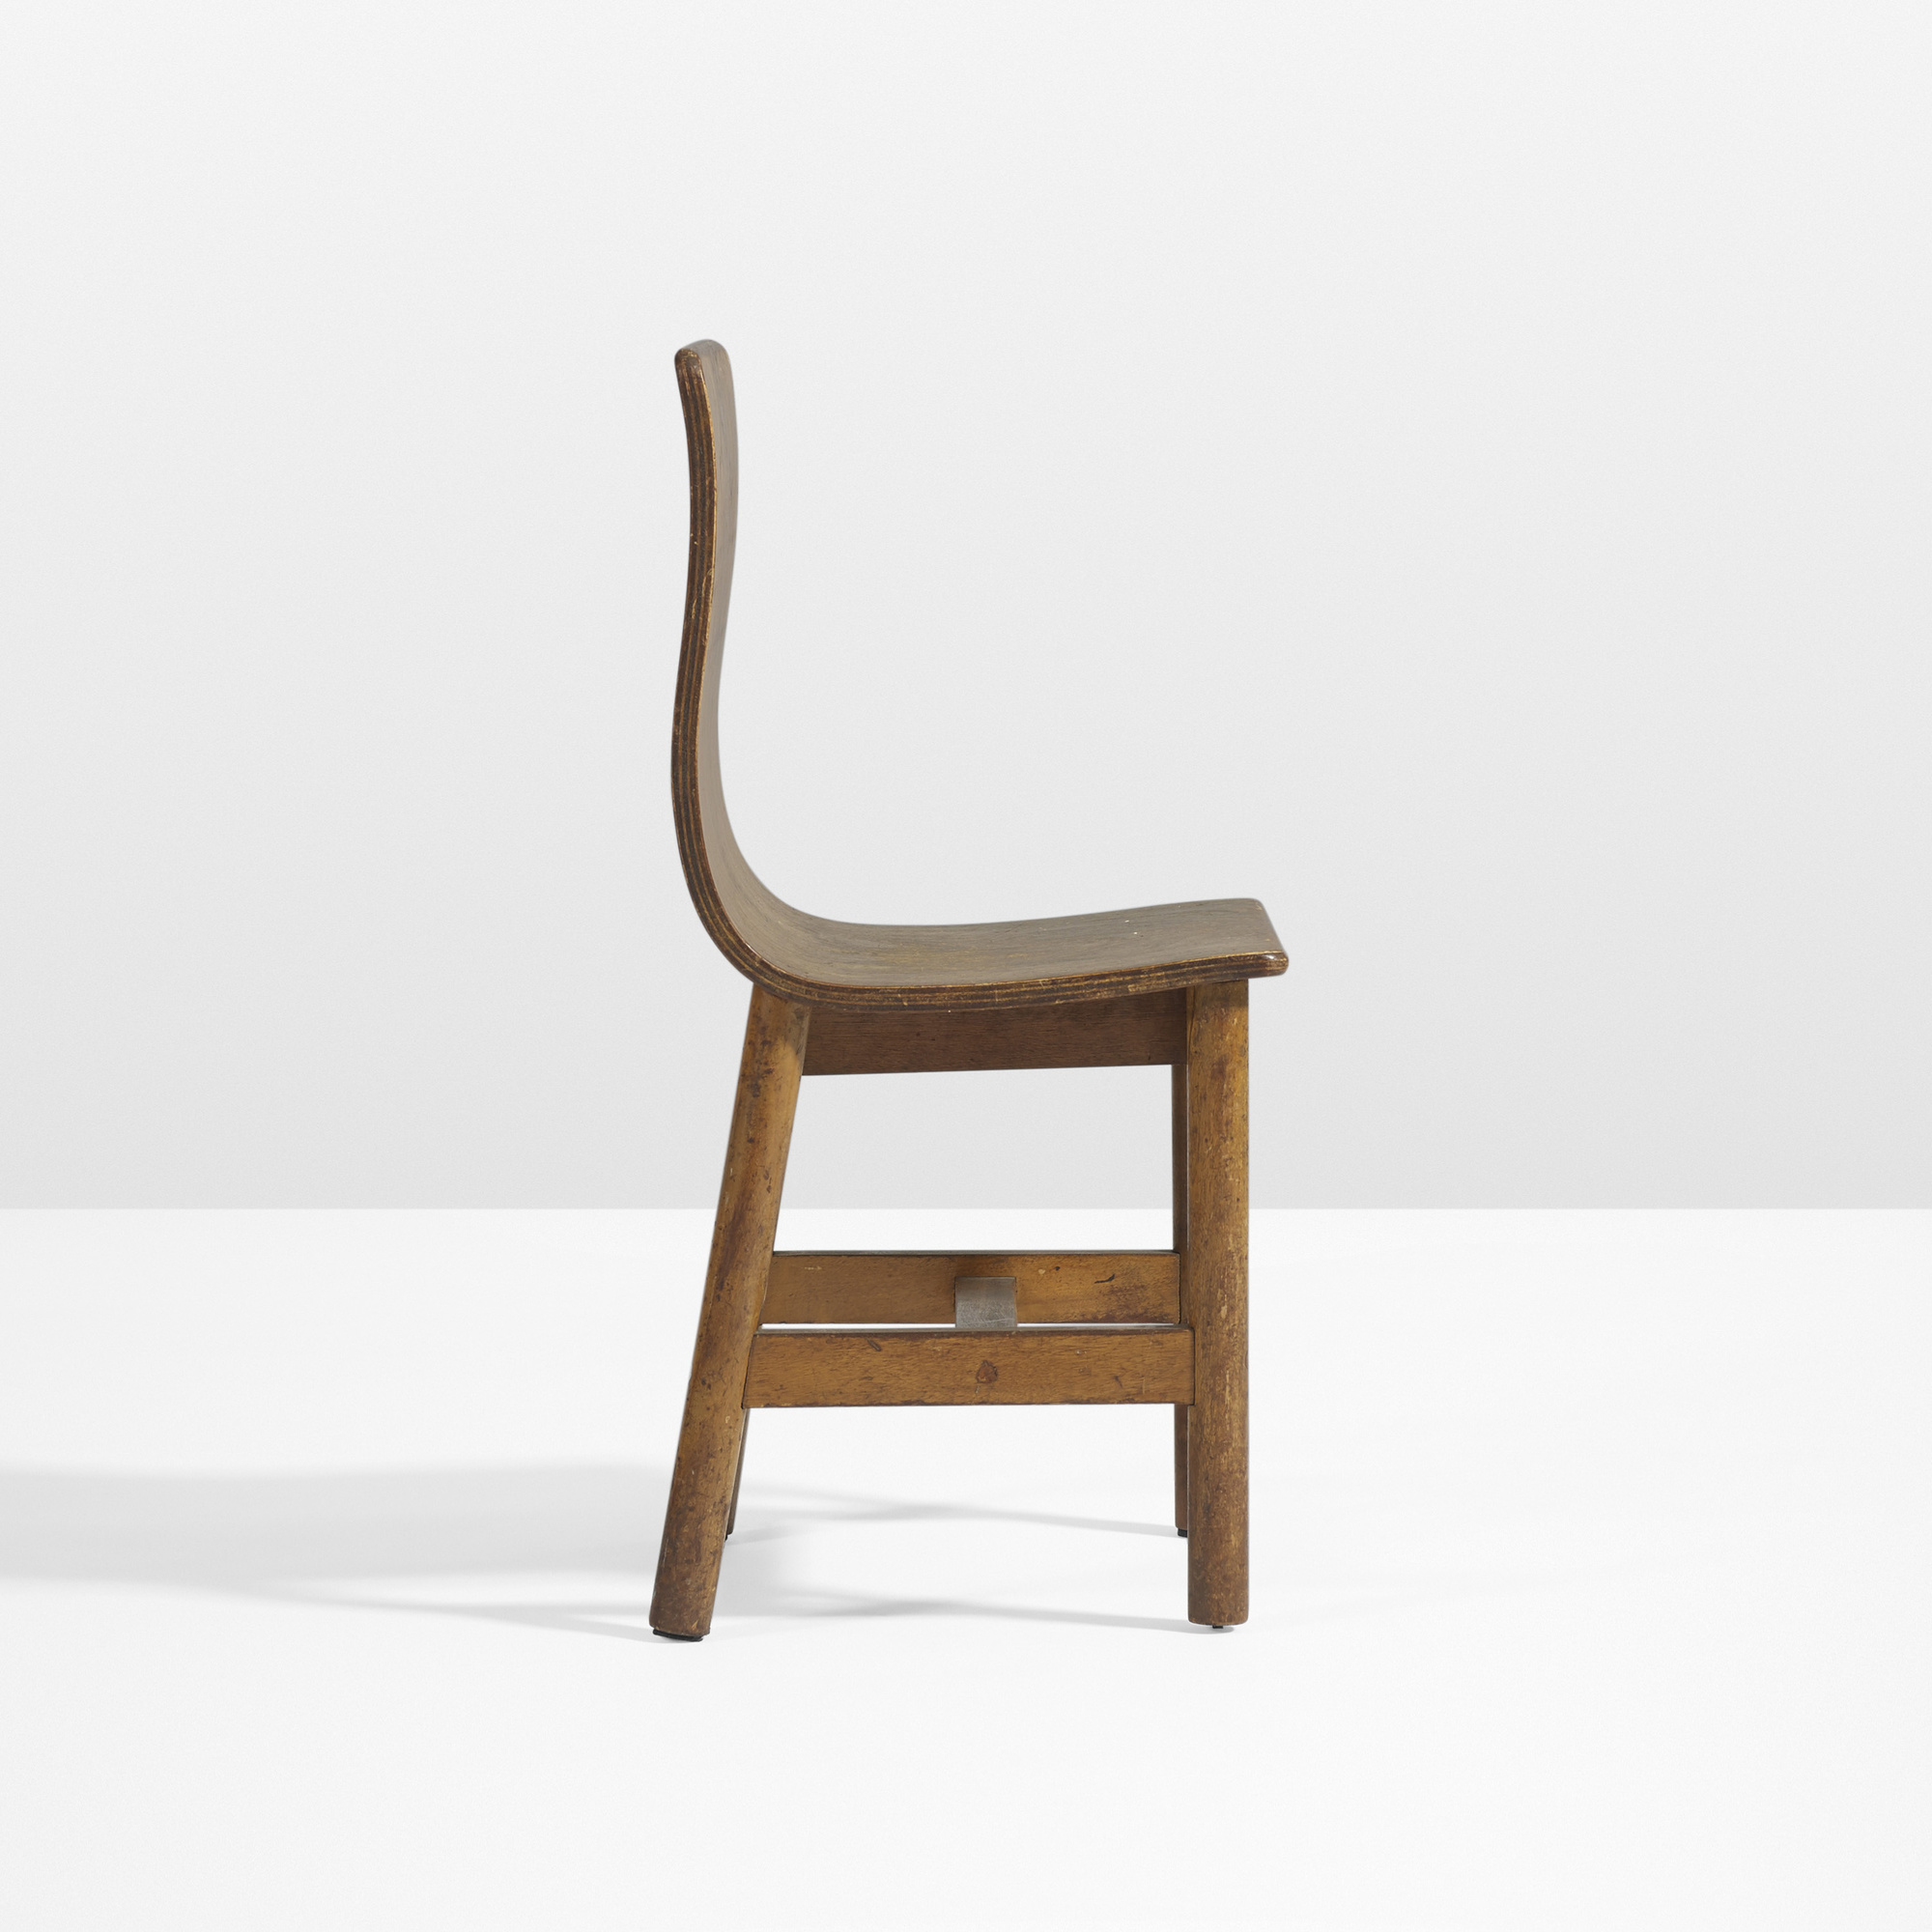 6 Charles Eames and Eero Saarinen Rare and early chair for the